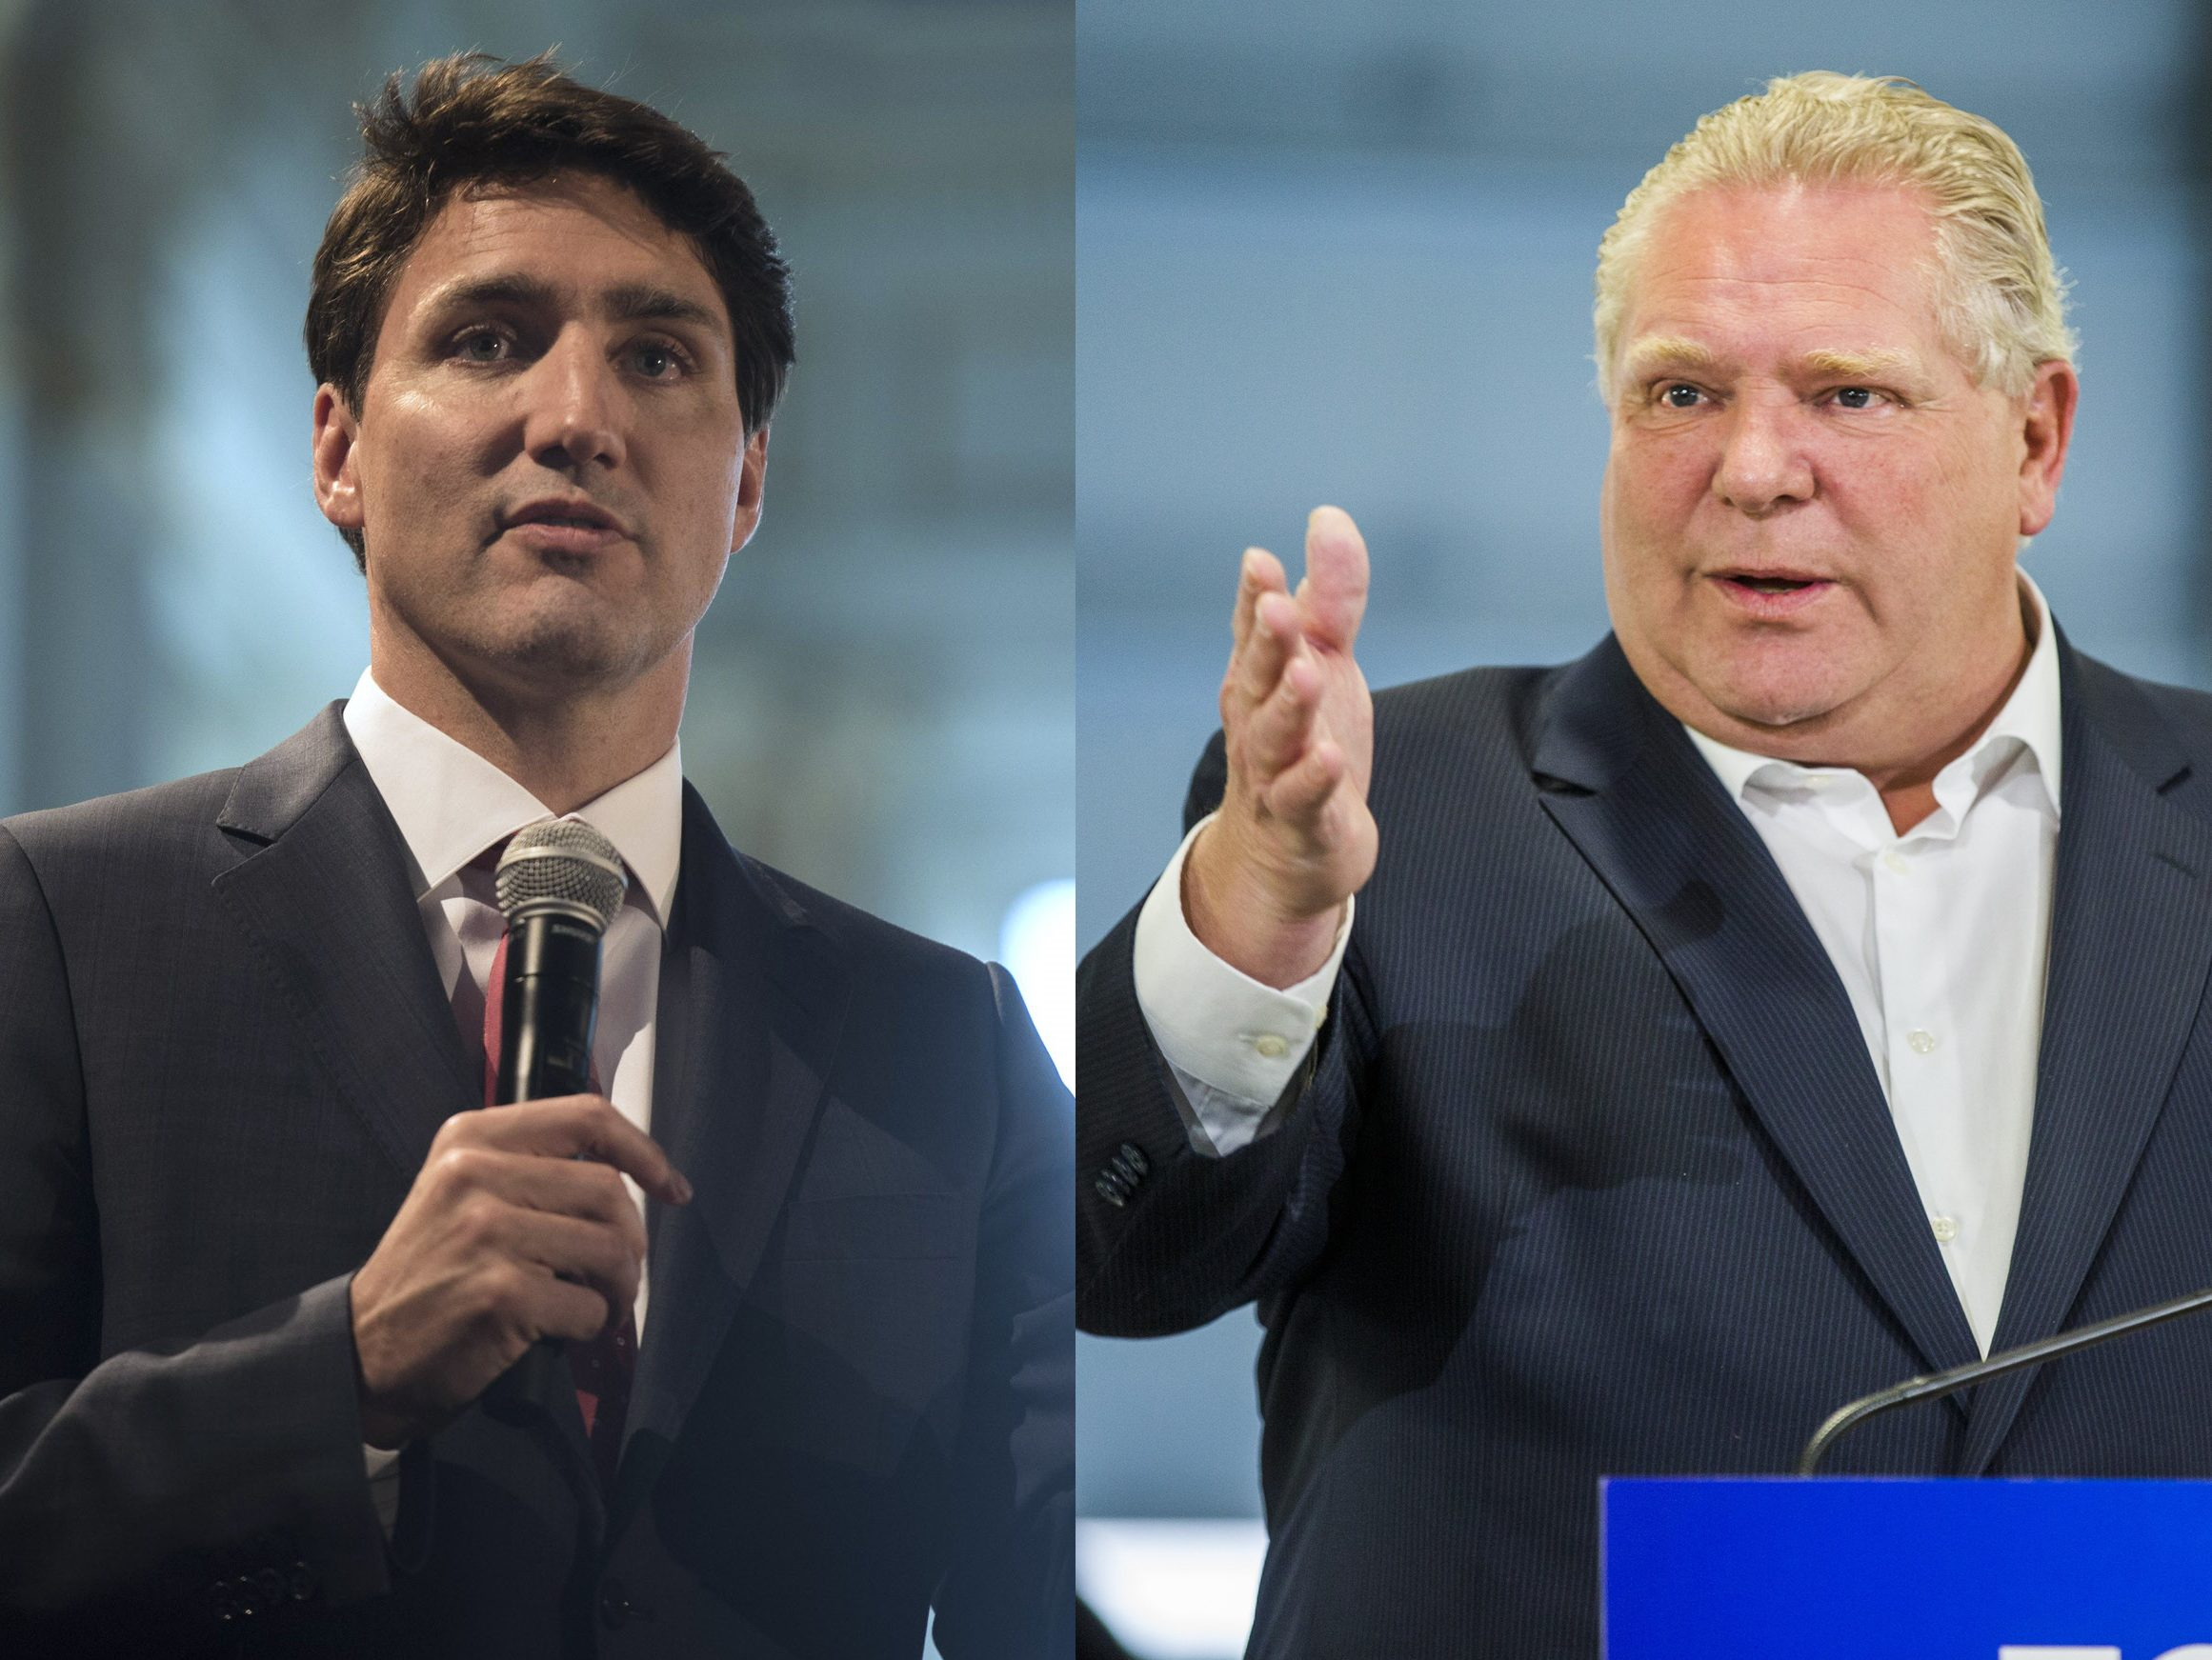 LILLEY: Ford right, Trudeau wrong on border restrictions issue